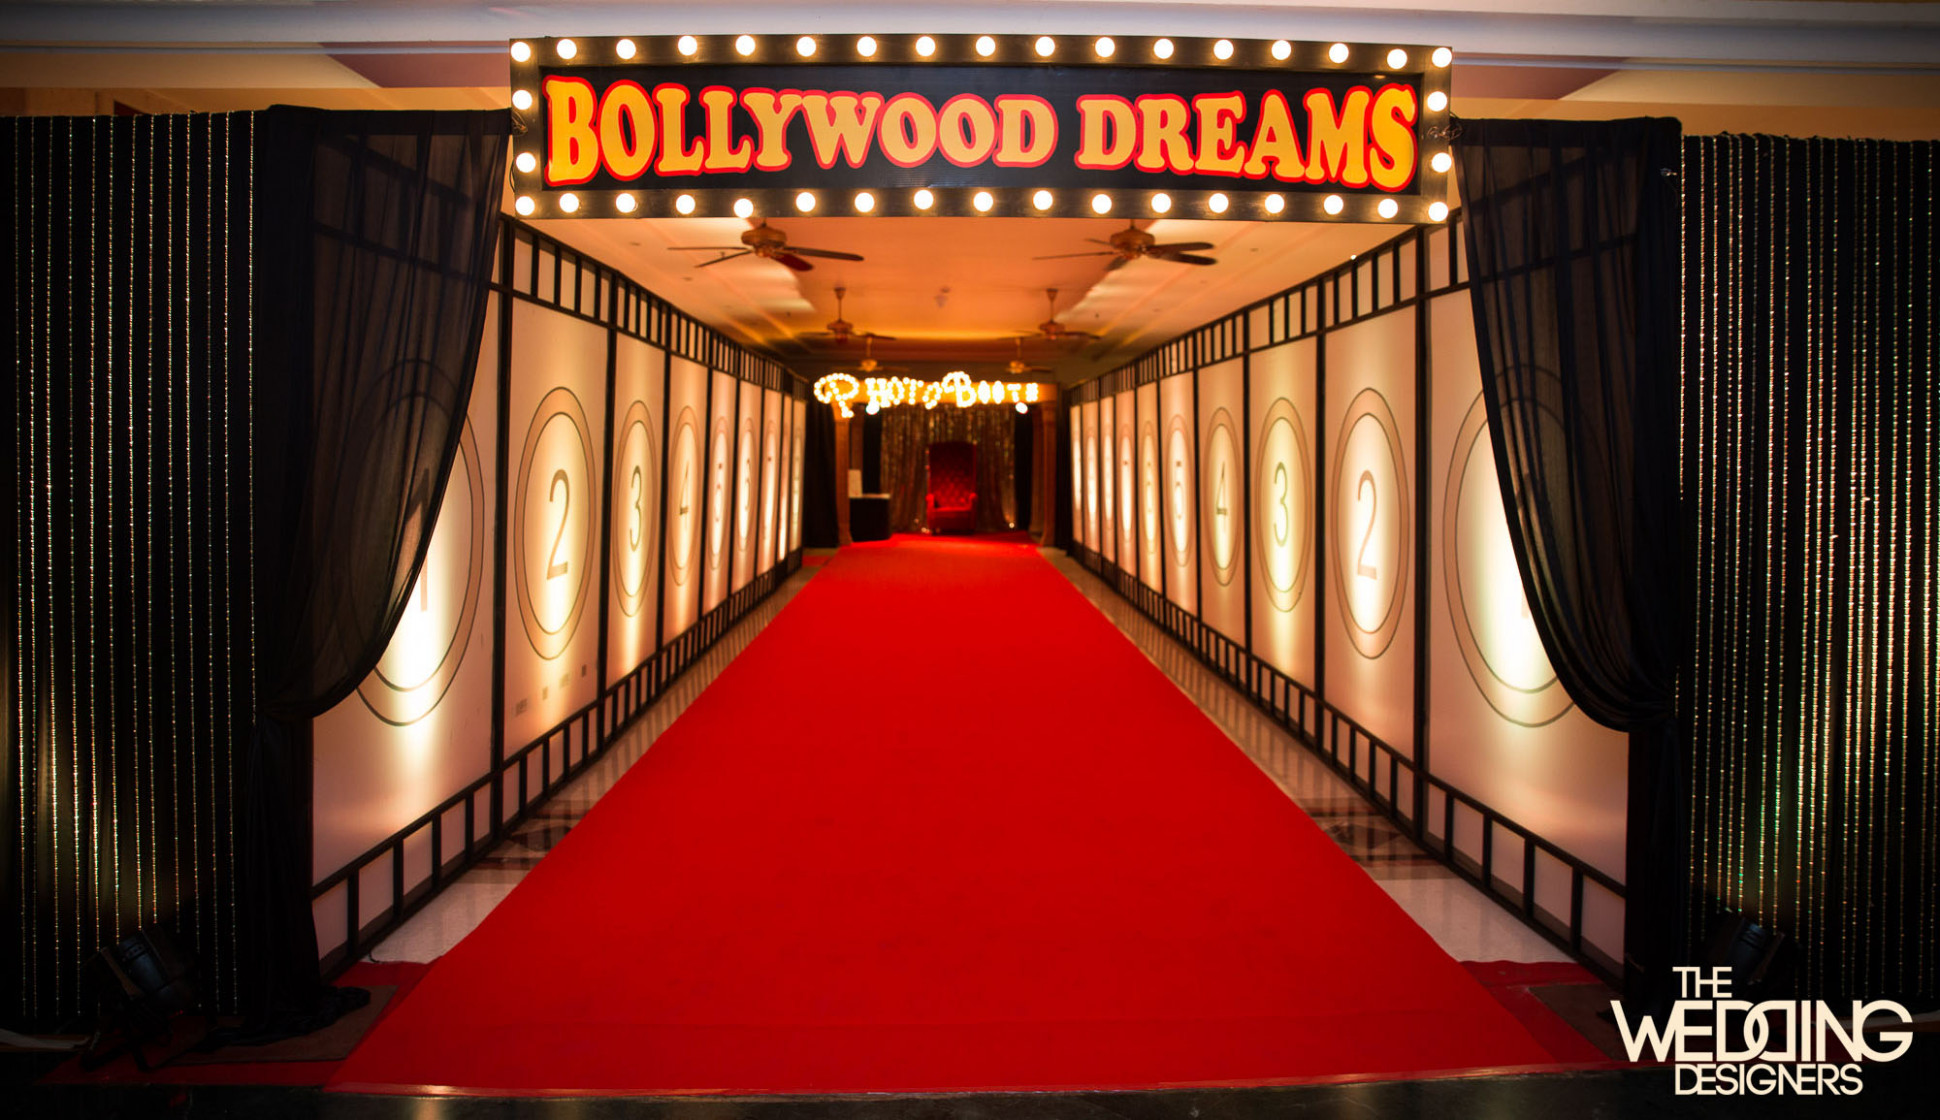 Design Your Dream Wedding | Bollywood in wedding decor